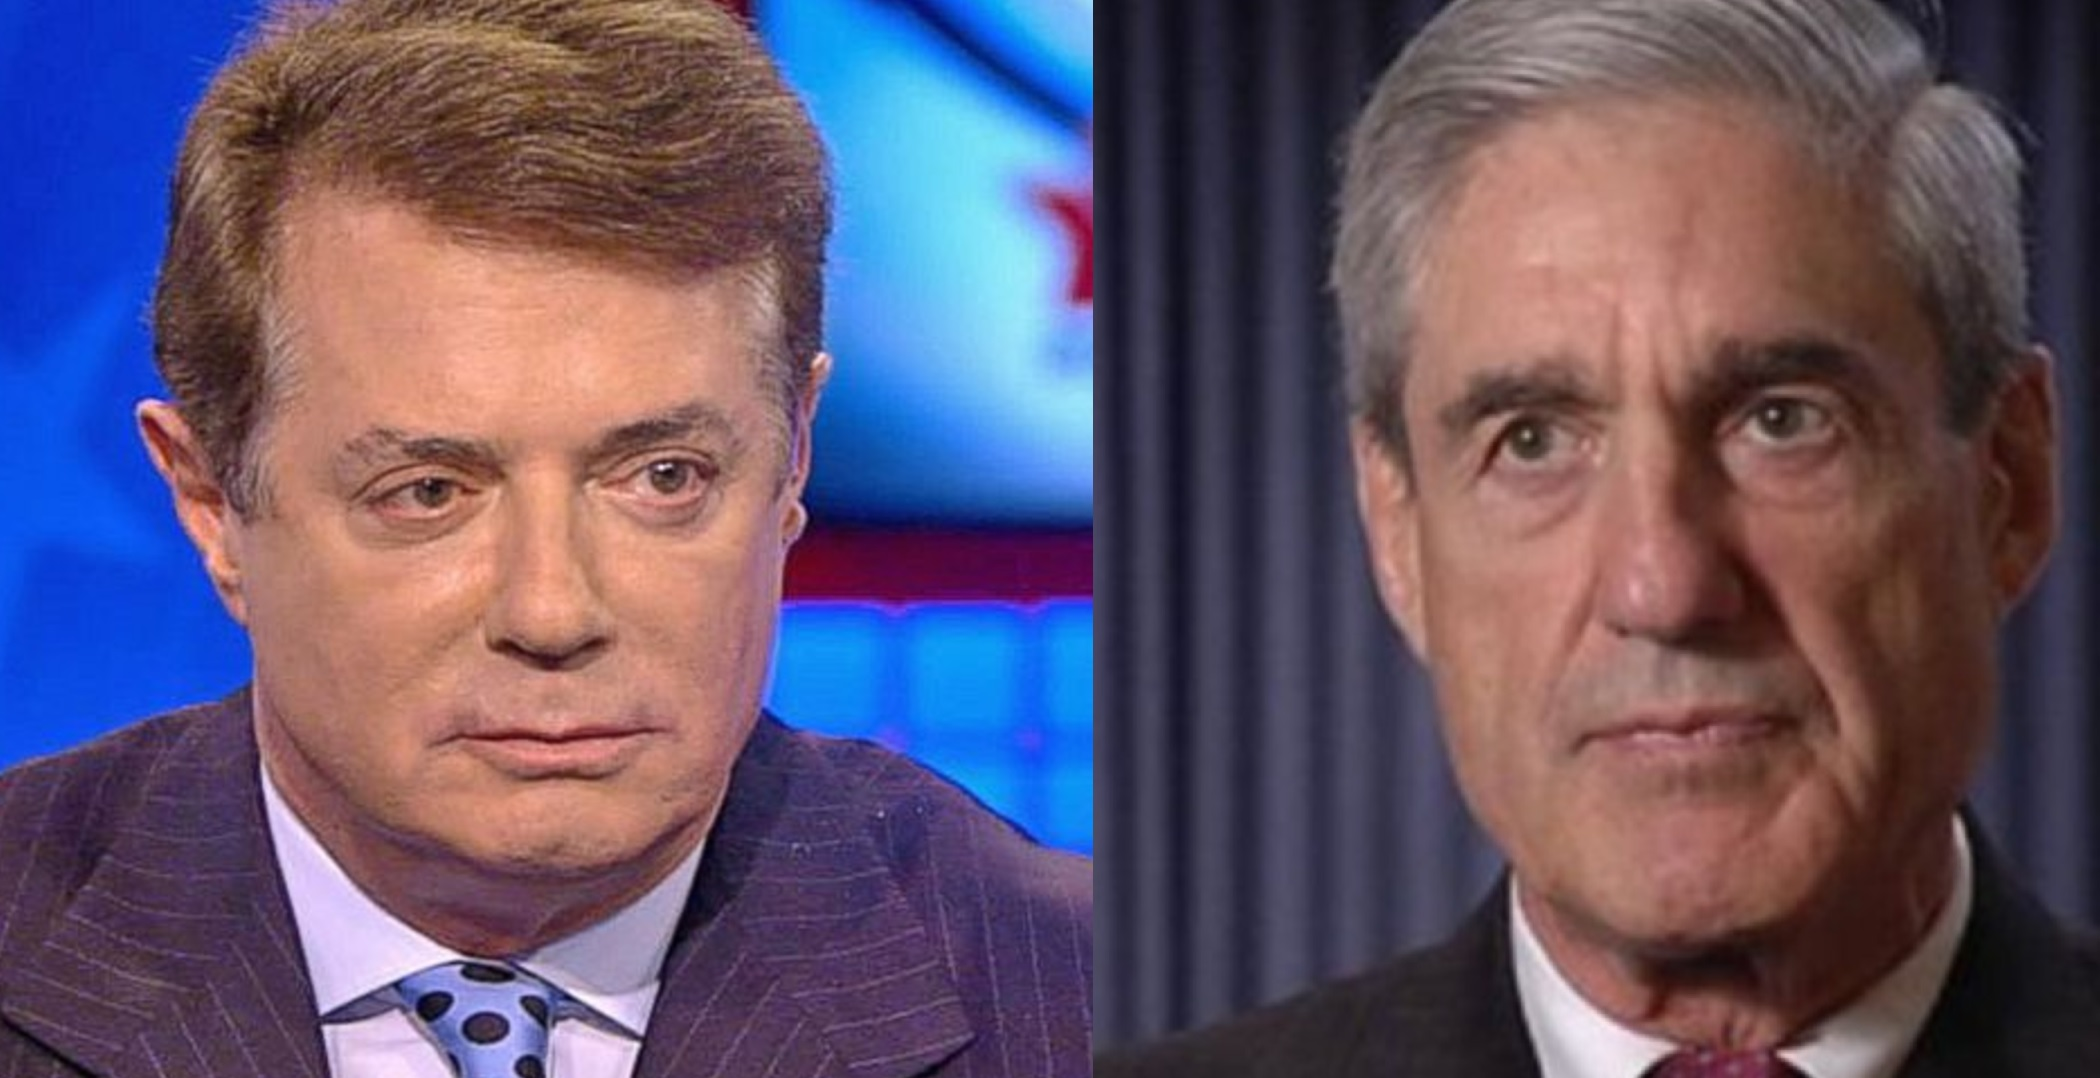 Ex-Trump Campaign Chairman Paul Manafort Expected To Plead Guilty In Mueller Probe: Report